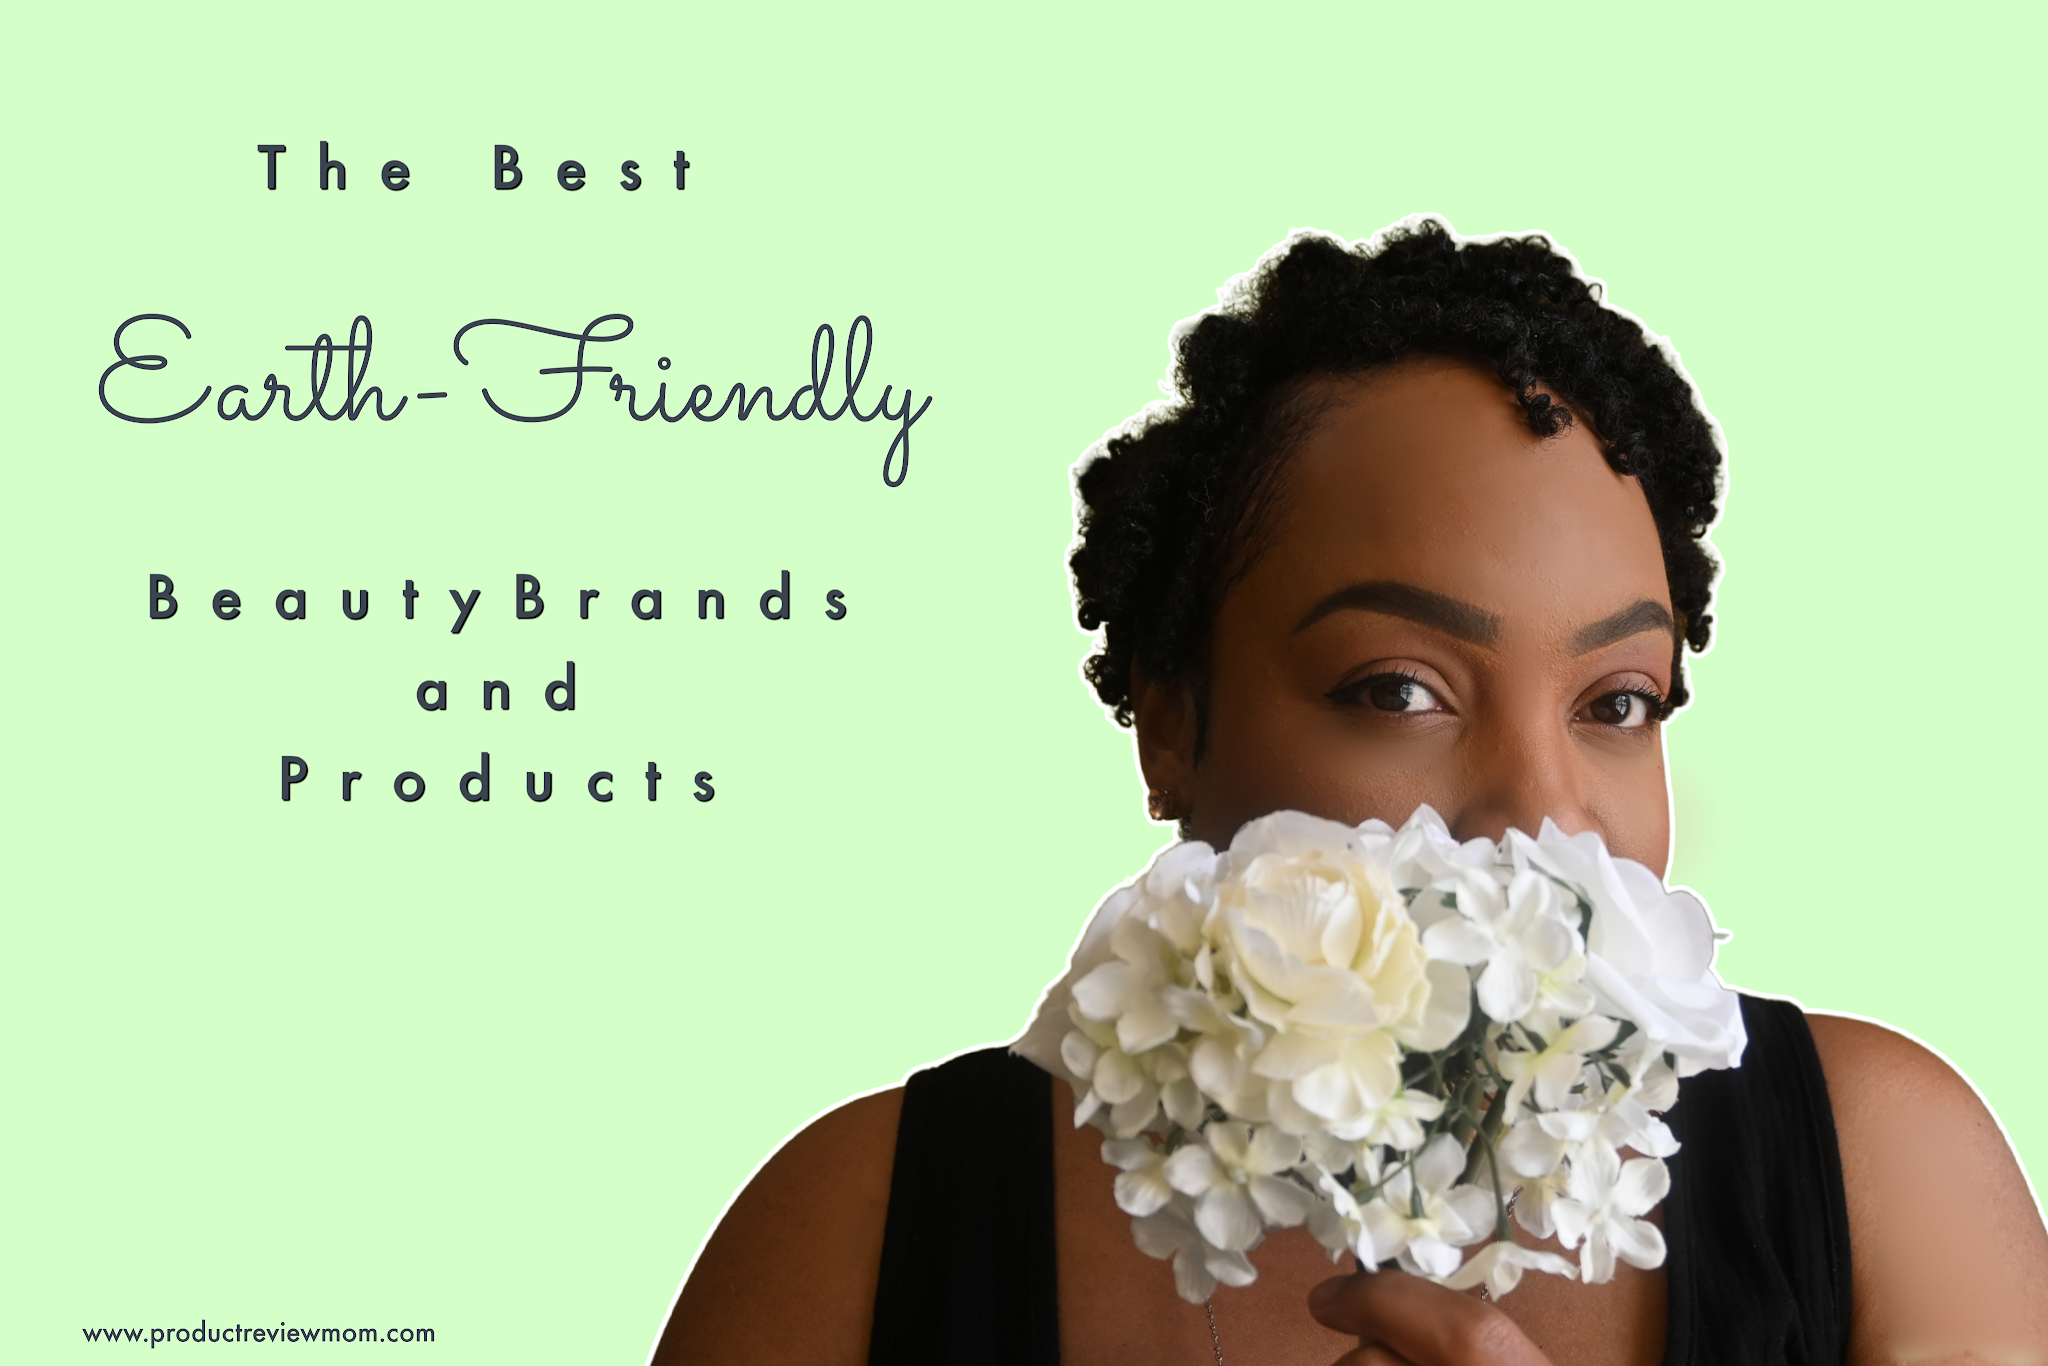 The Best Earth-Friendly Beauty Brands and Products